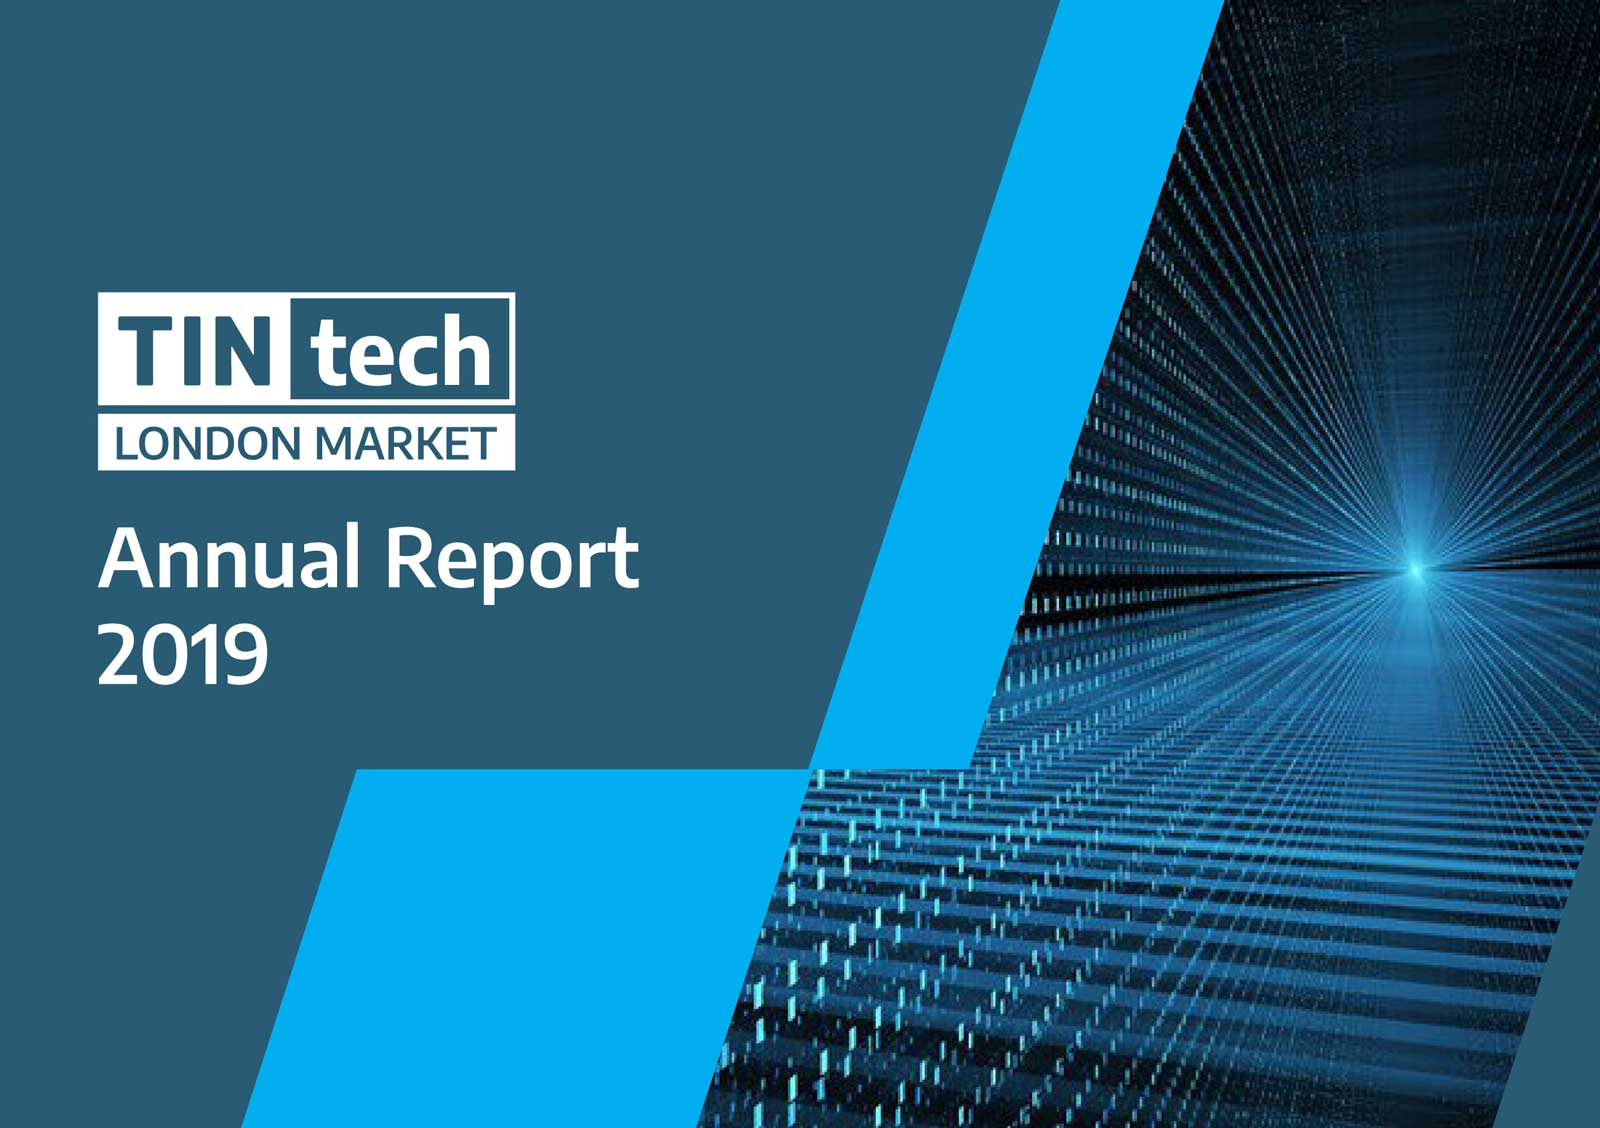 TINtech London Market Annual Report 2019